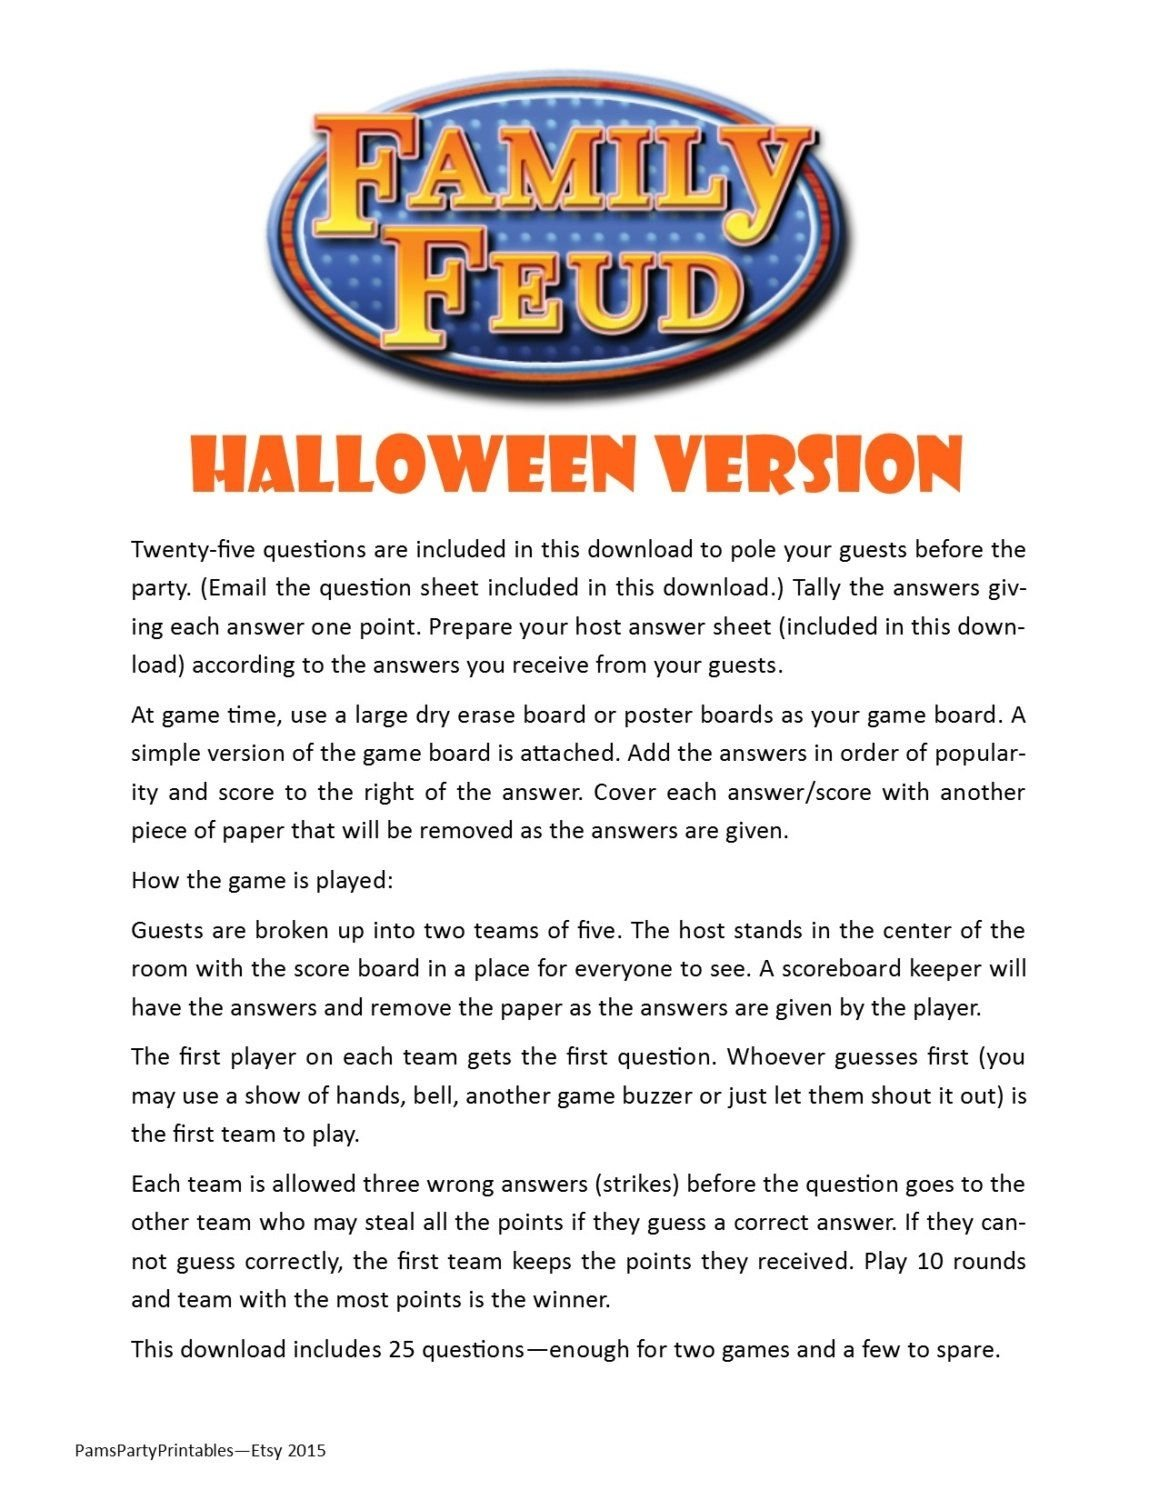 10 Best Youth Group Christmas Party Ideas halloween family feud printable game halloween party game 2020